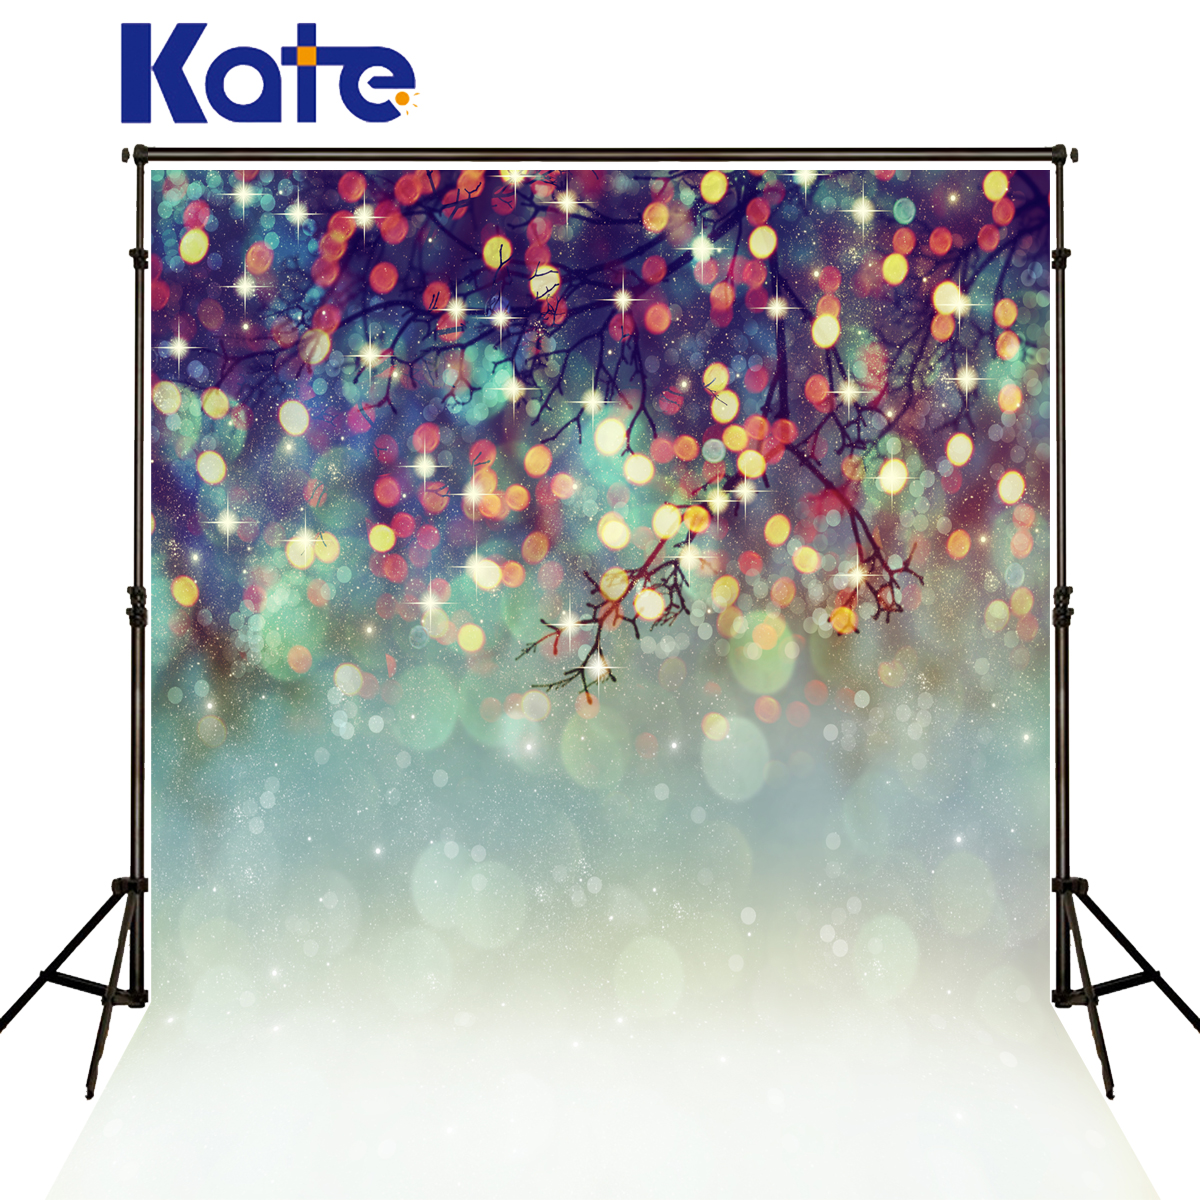 Kate Christmas  Backdrops Photography Spot Colour Branch Fond Photo noel Background Dream Tree Fundo Fotografico arvore de Natal blue sky white clouds beach coconut tree backdrops fotografia fundo fotografico natal background photograph